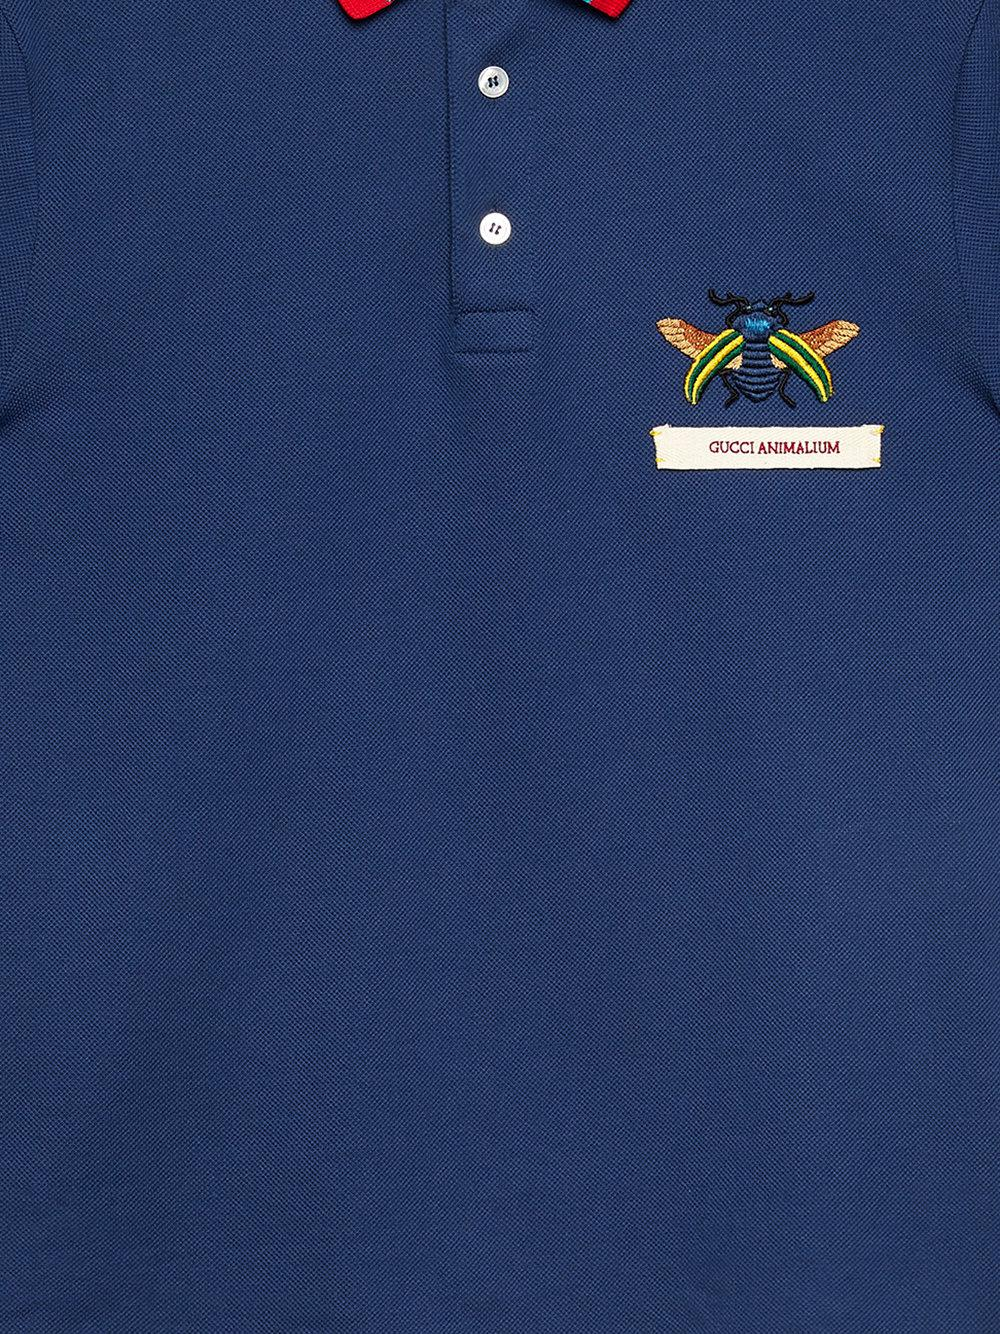 bad3599df Gucci Animalium Cotton Polo Shirt in Blue for Men - Lyst